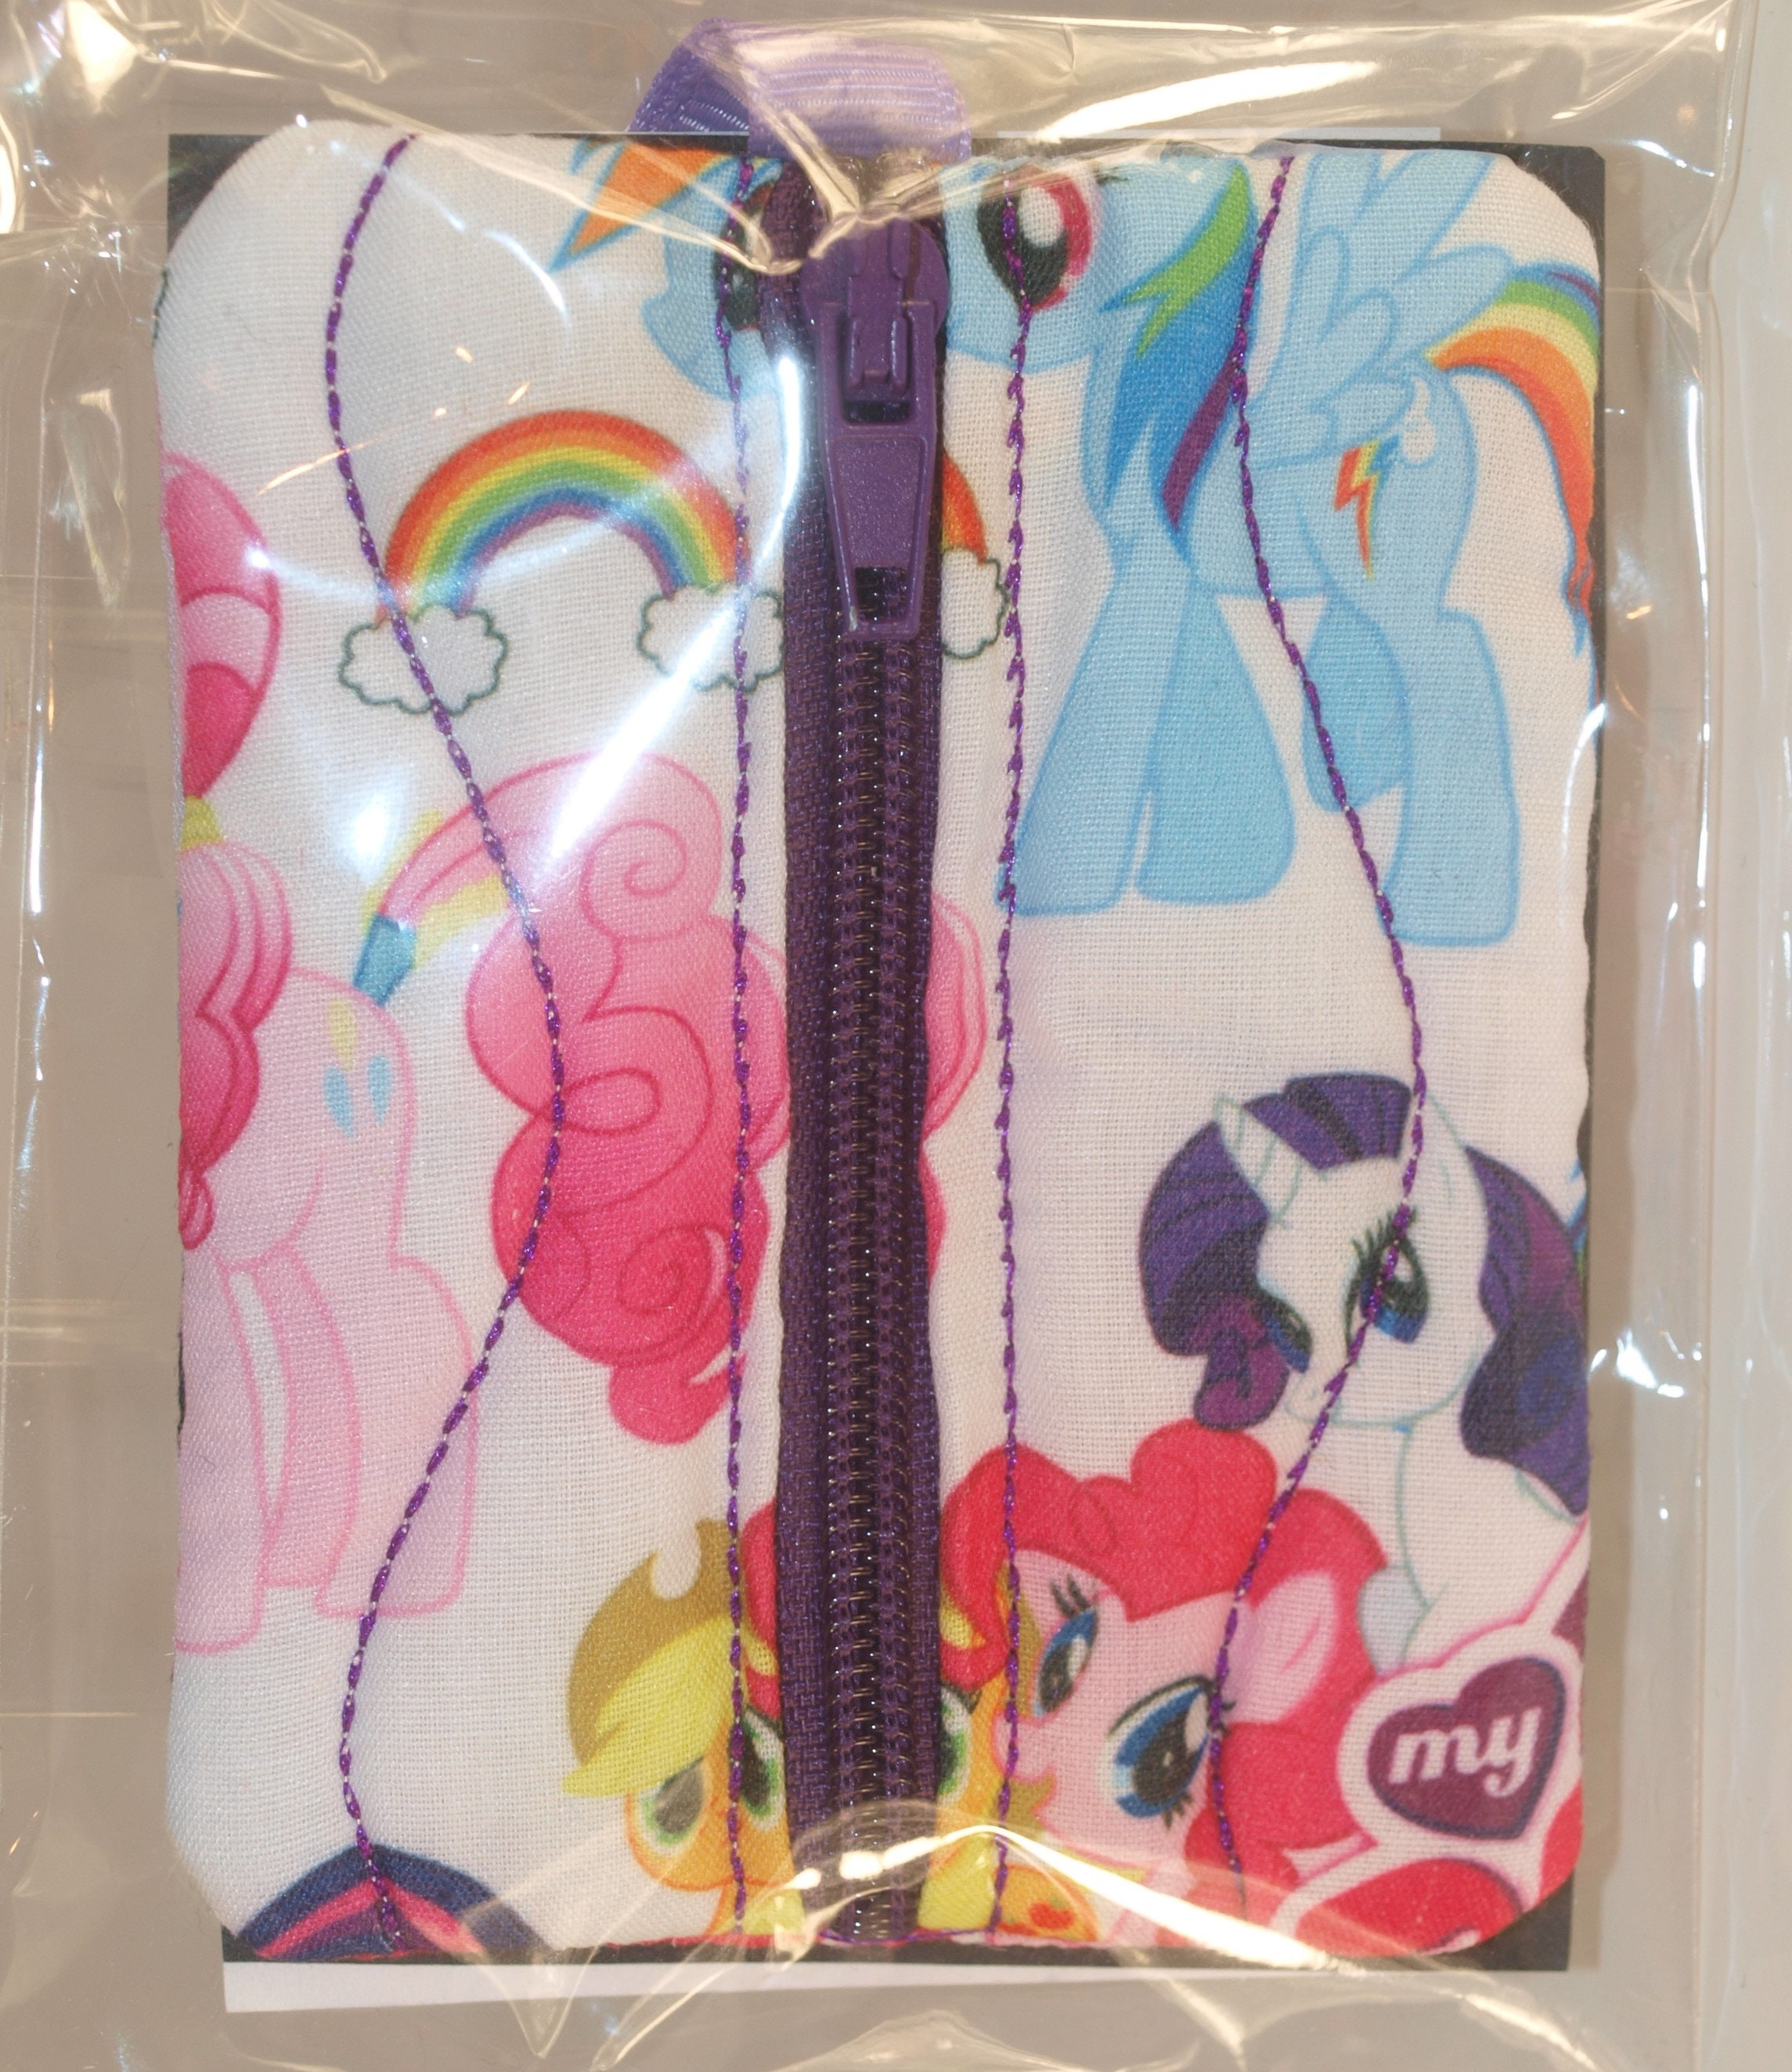 My Little Pony Coin purse, MLP purse, MLP pouch, Memory stick holder, Pony gifts, MLP accessory, Earphone holder, My Little pony gift,